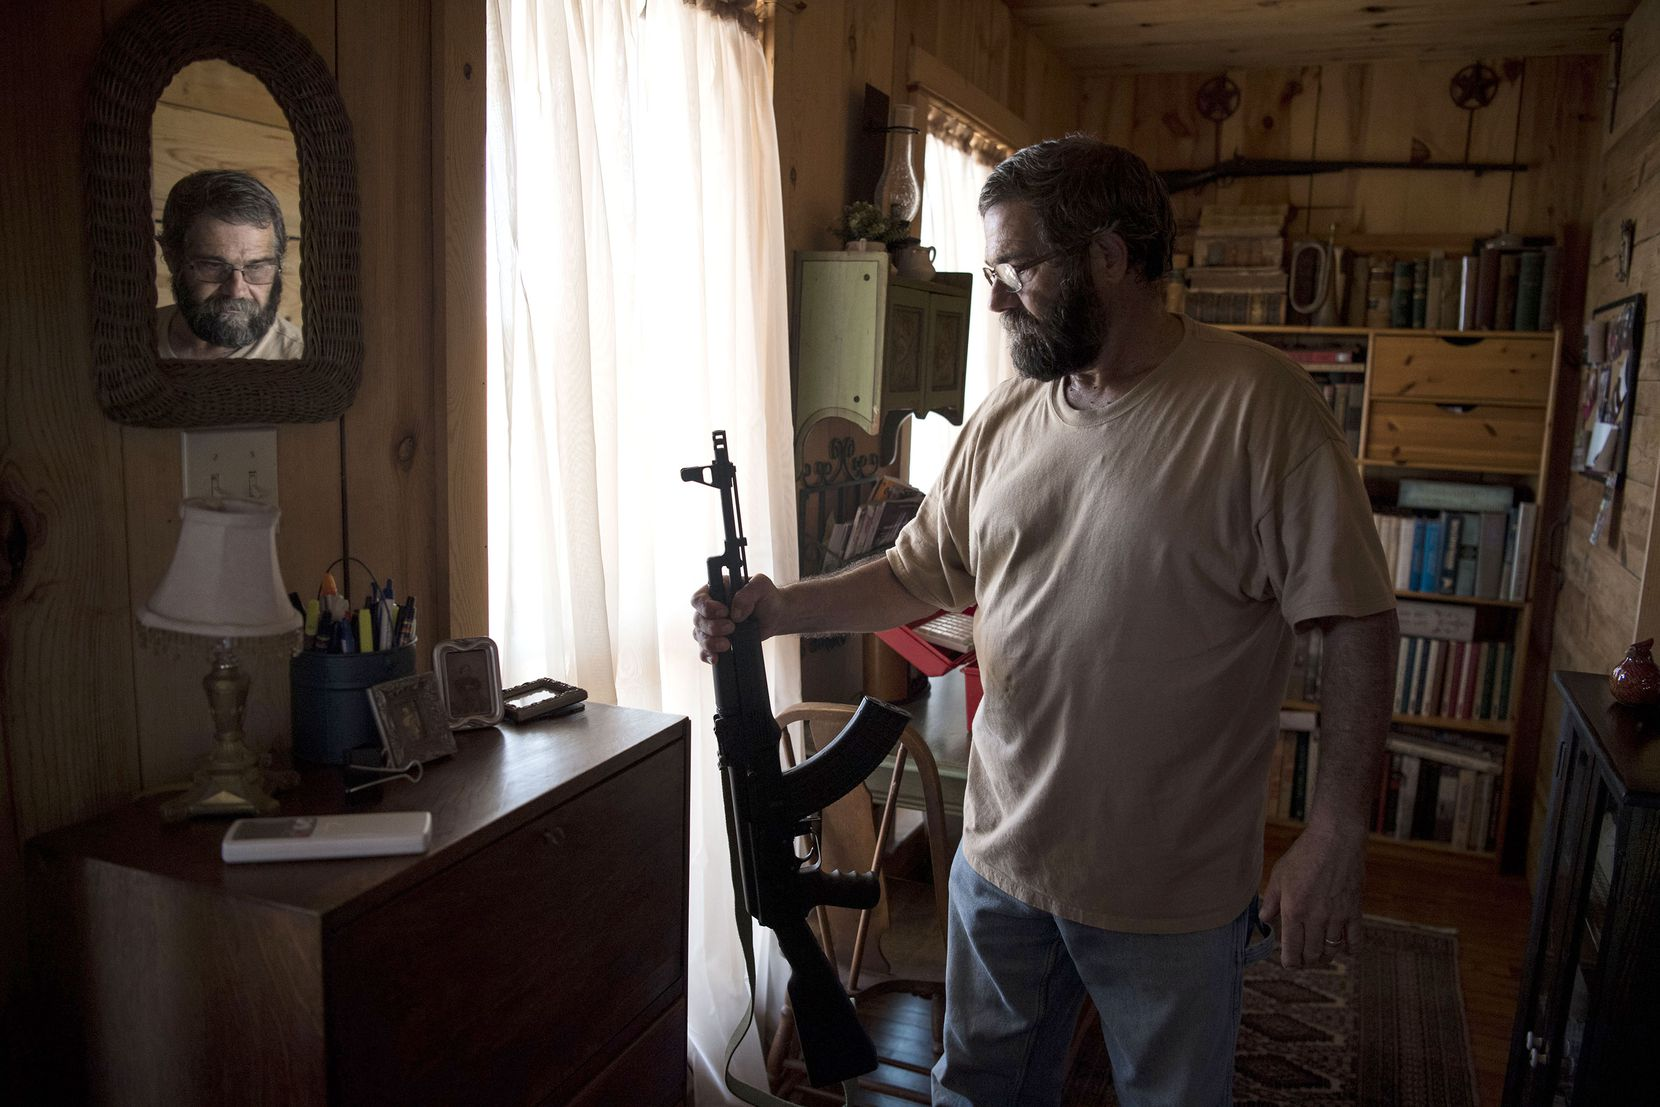 """Sutherland Springs resident Kevin Langdon owns about 50 guns. In the small town, he said, """"Everyone has everyone else's back, and guns are how we keep one another safe."""""""